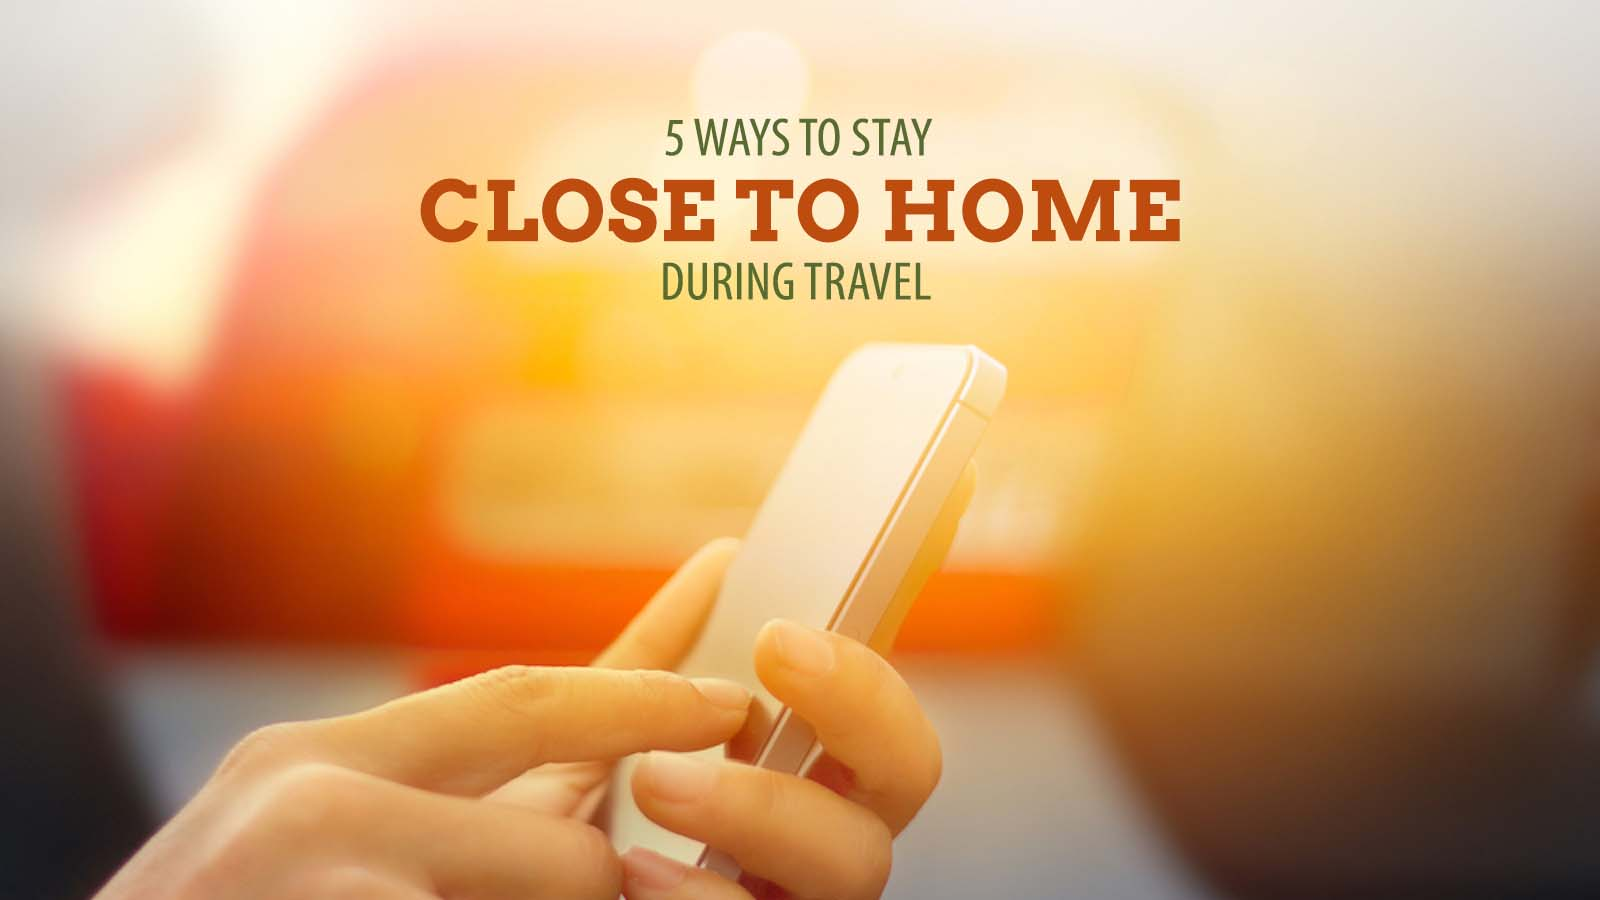 5 Ways to Stay Close to Home During Travel